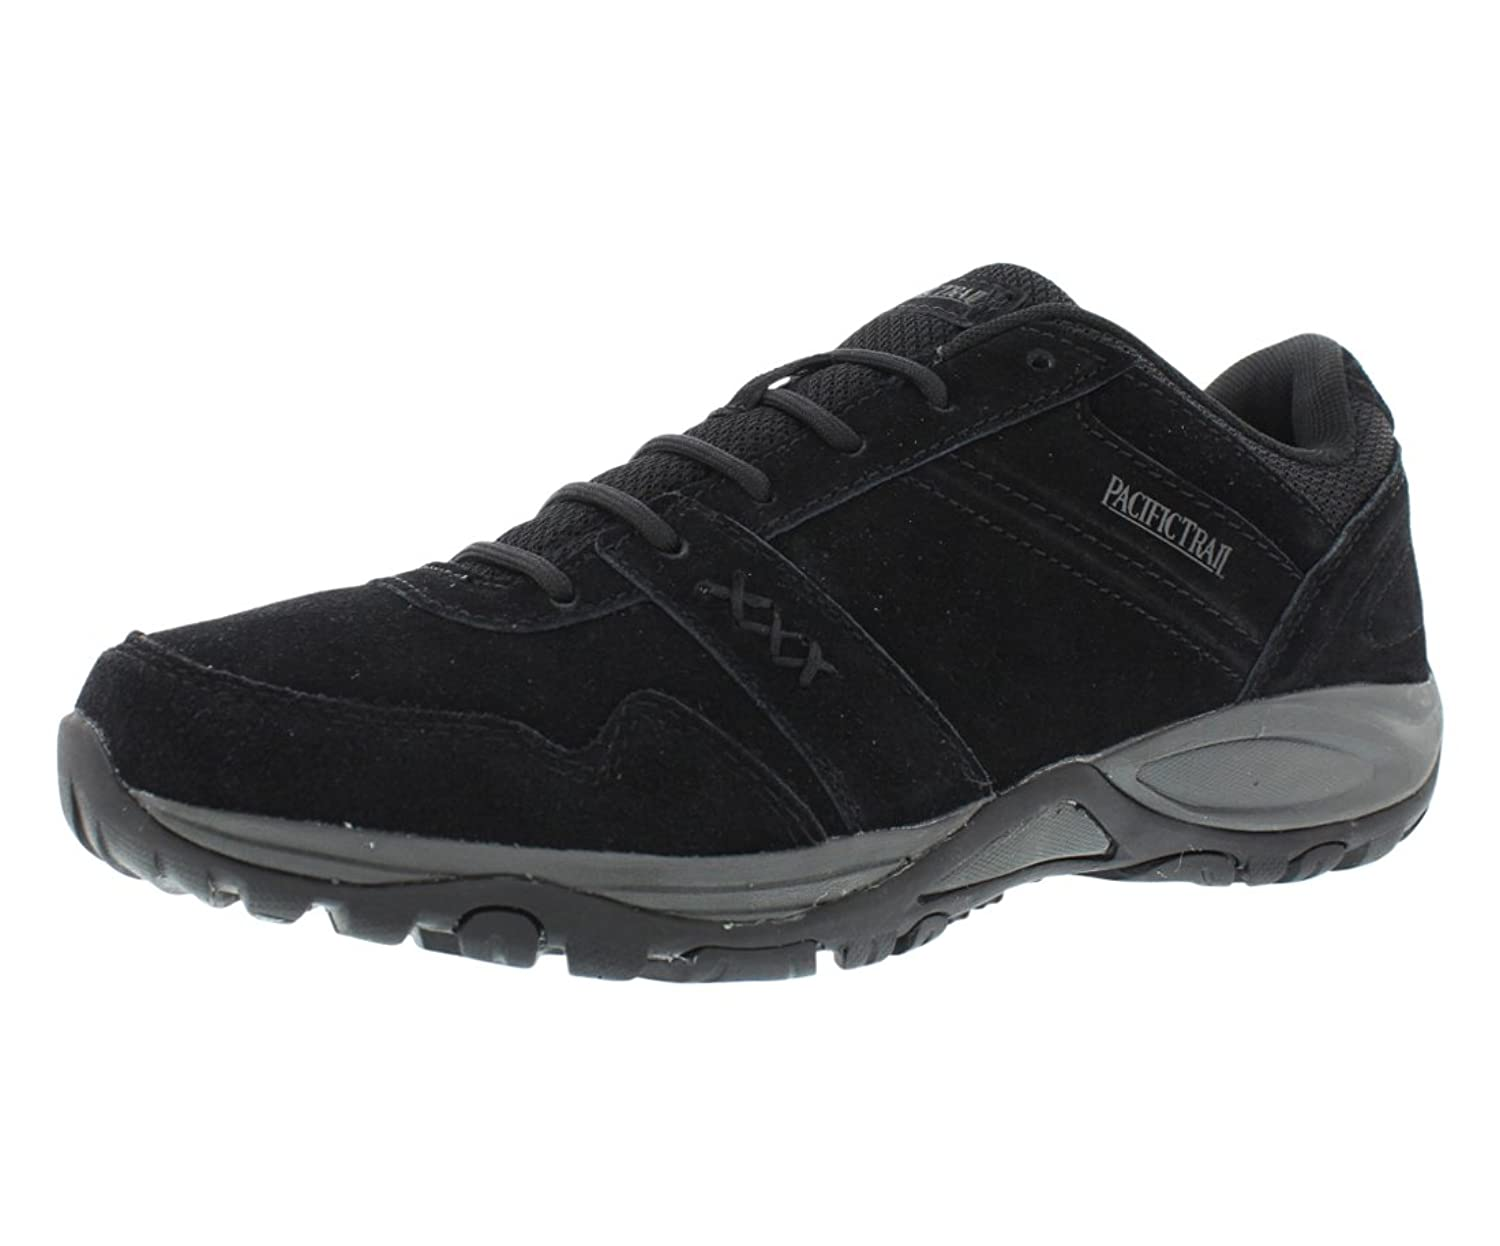 Pacific Trail Basin Hiking Men's Shoes Size